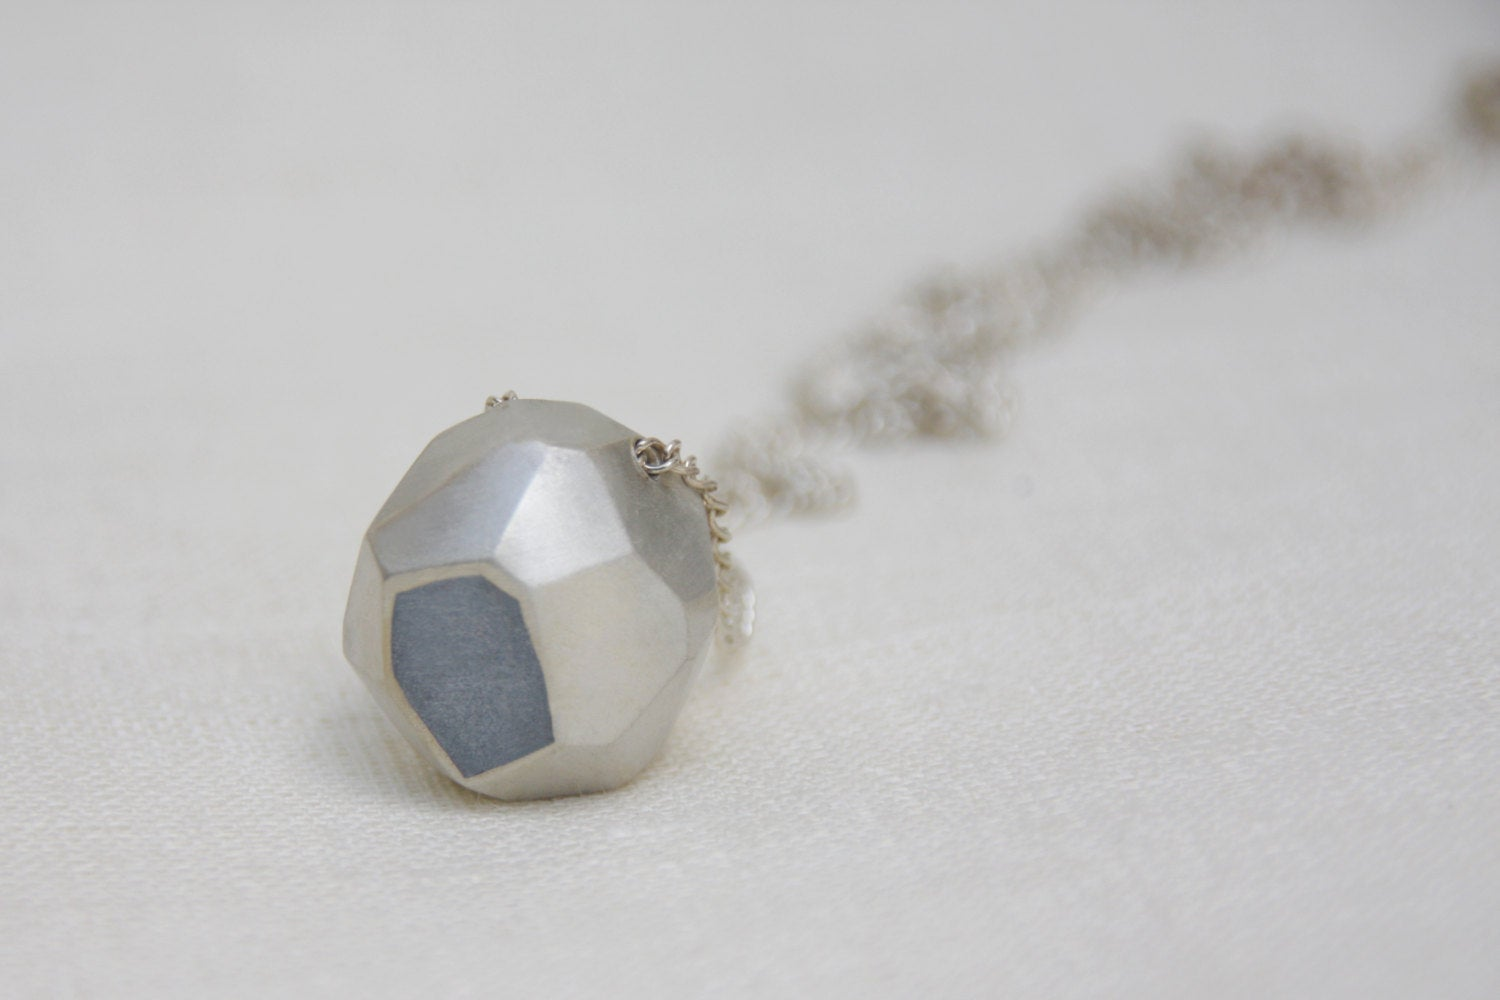 Silver And Concrete Pendant Necklace, Faceted Silver Nugget - hs